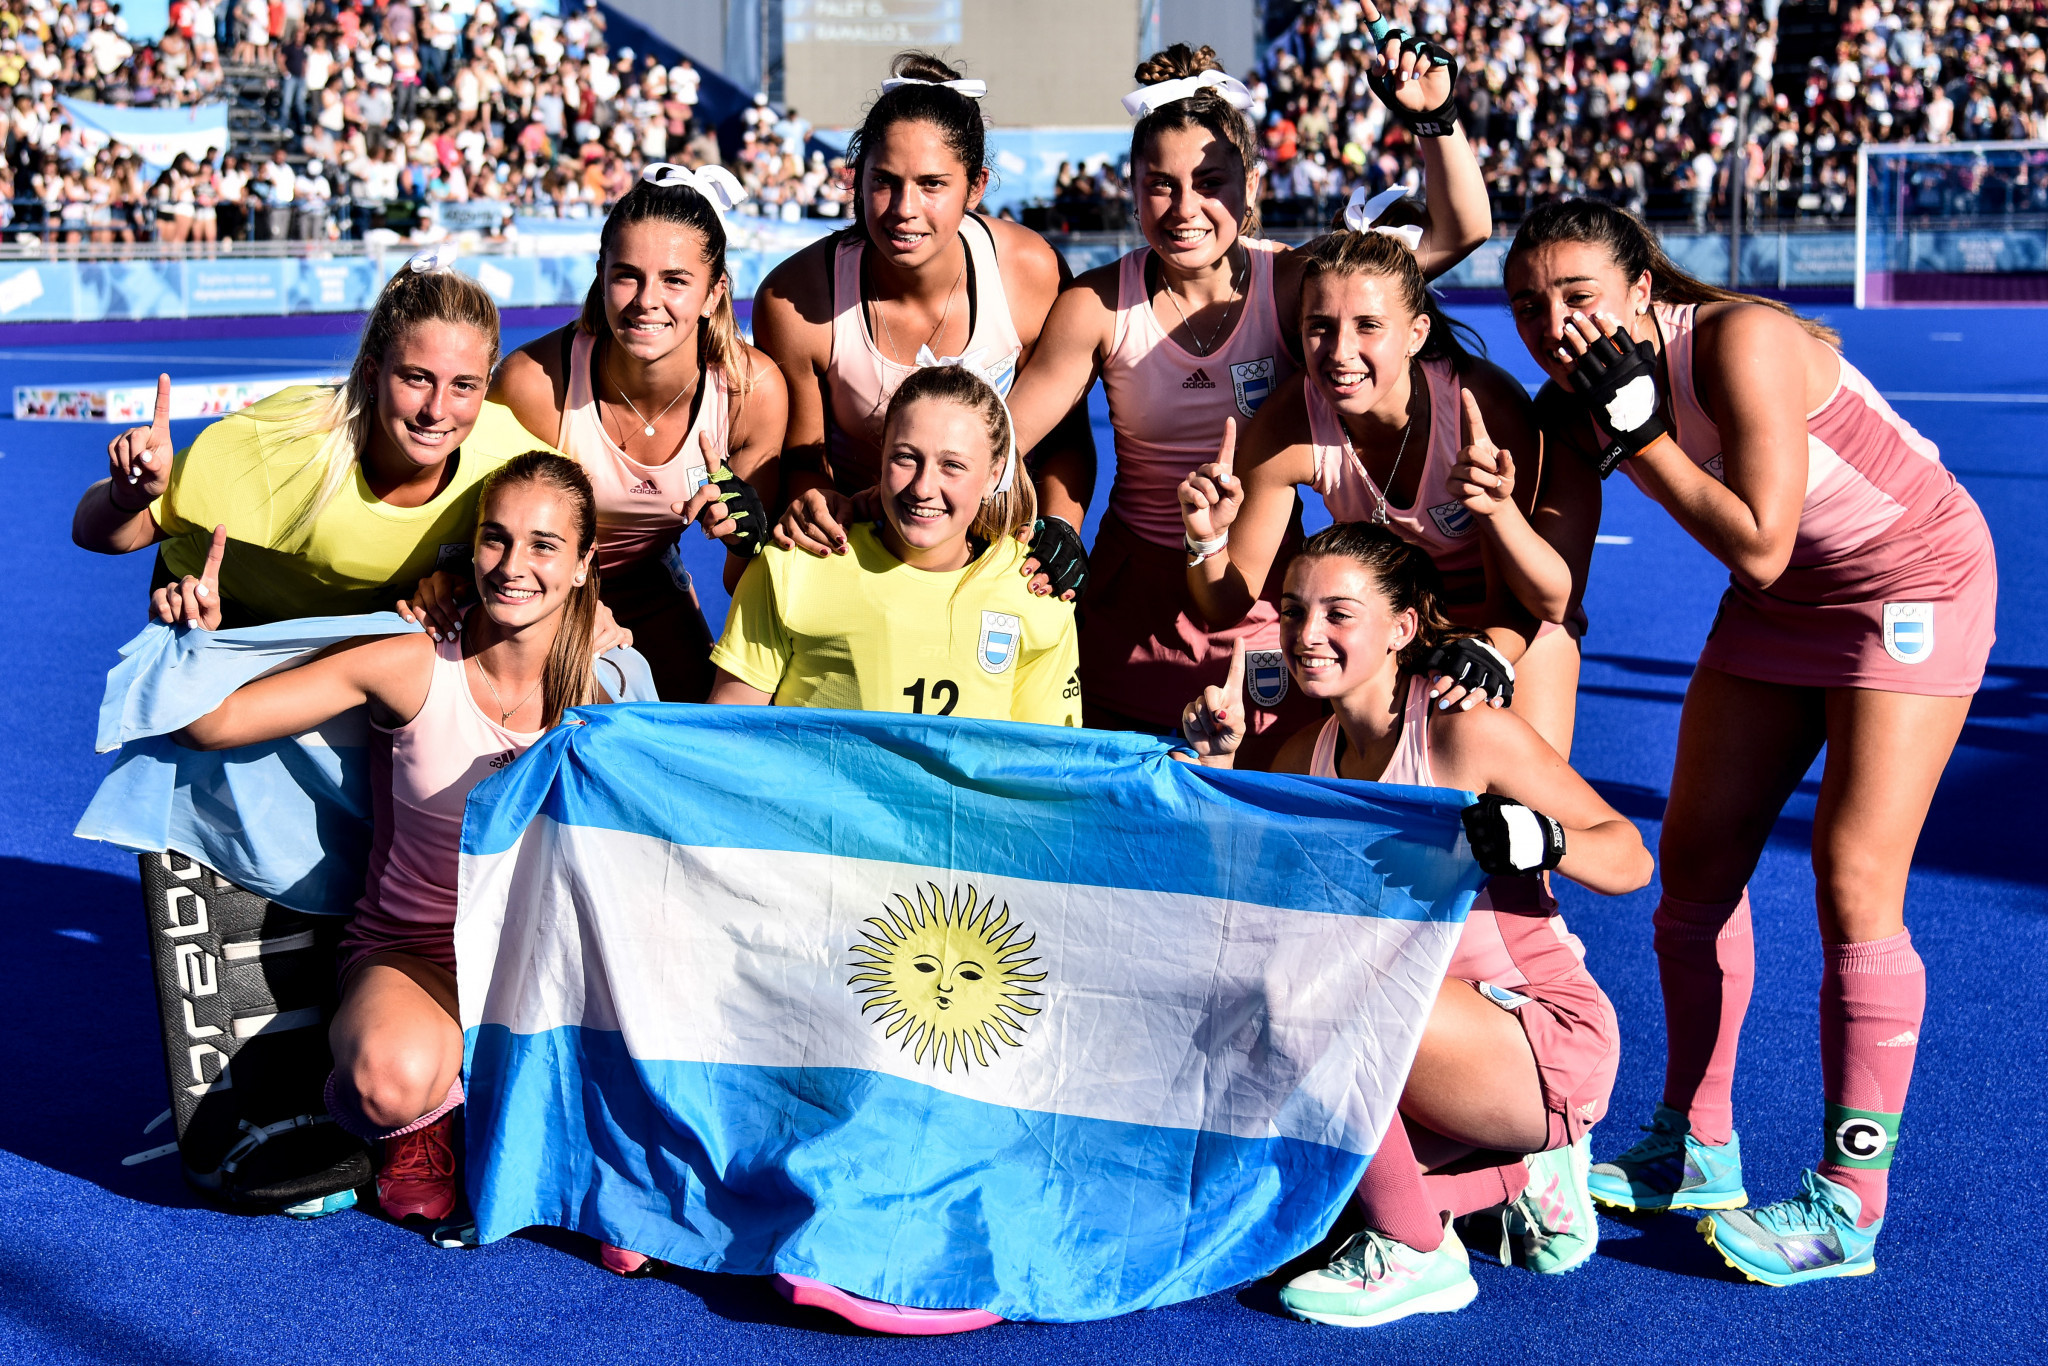 Argentina and Malaysia secure hockey5s titles at Buenos Aires 2018